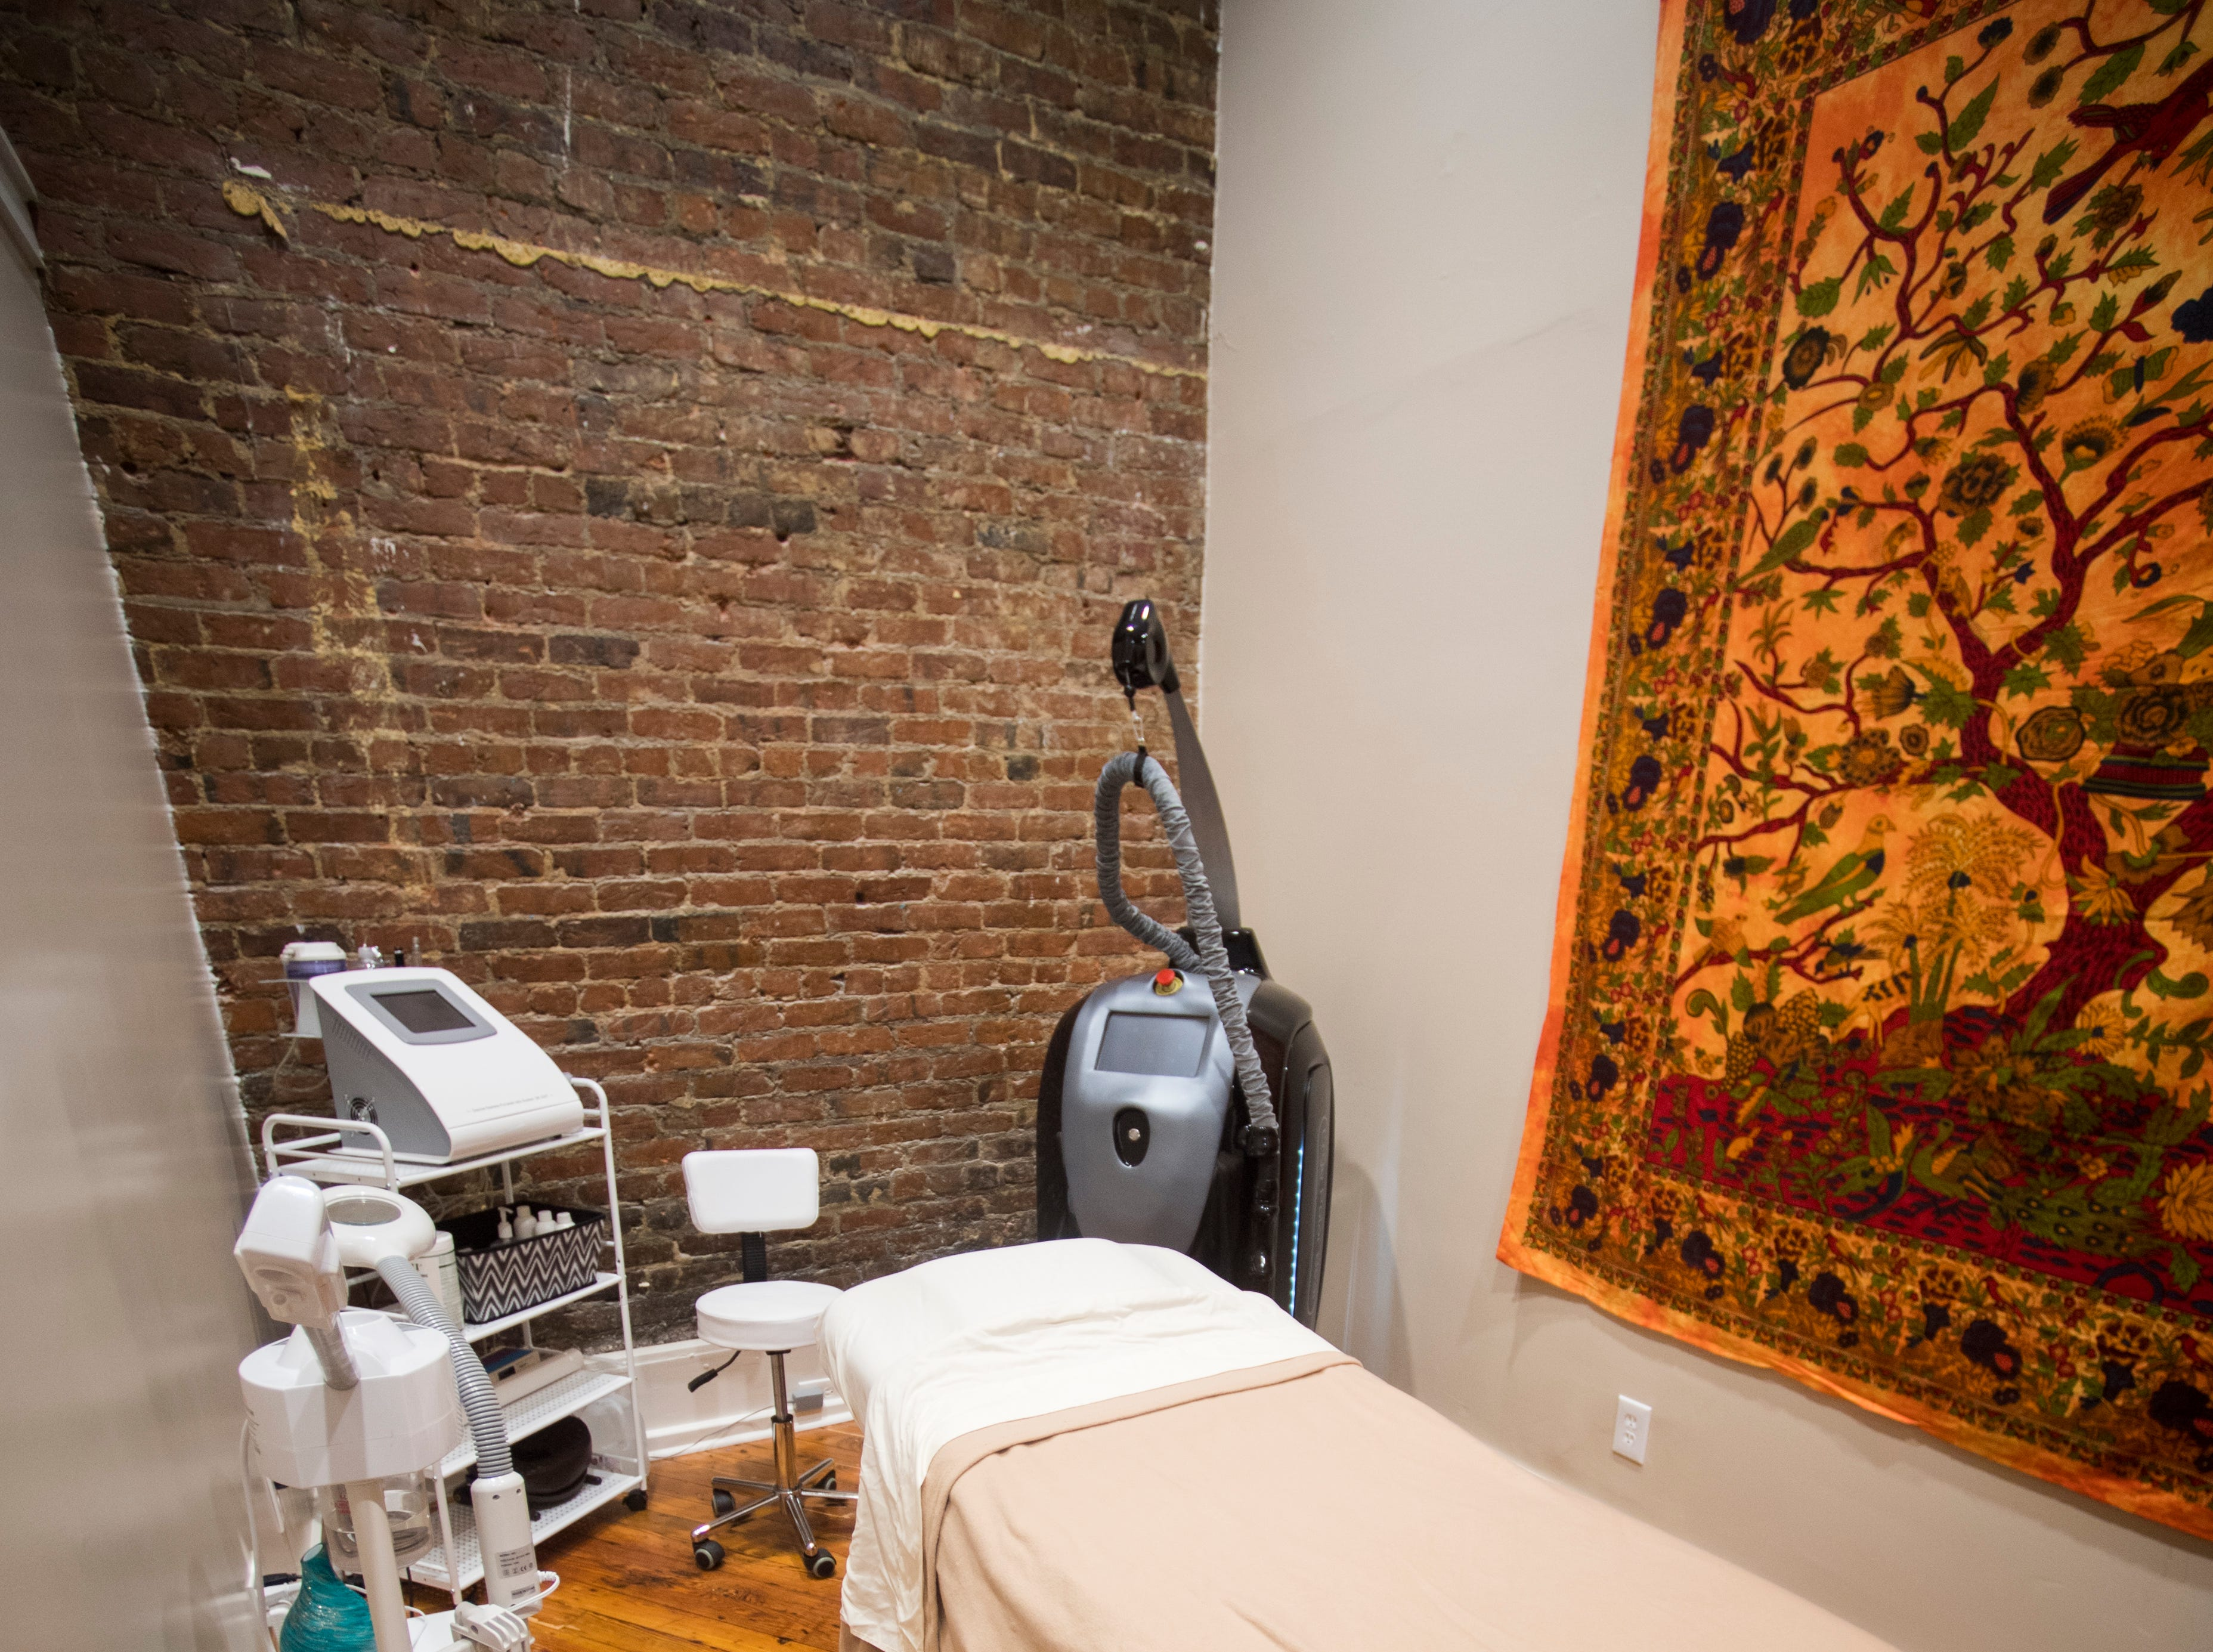 One of the rooms where skin services are performed at Old City MedSpa in downtown Knoxville on Monday, February 4, 2019.